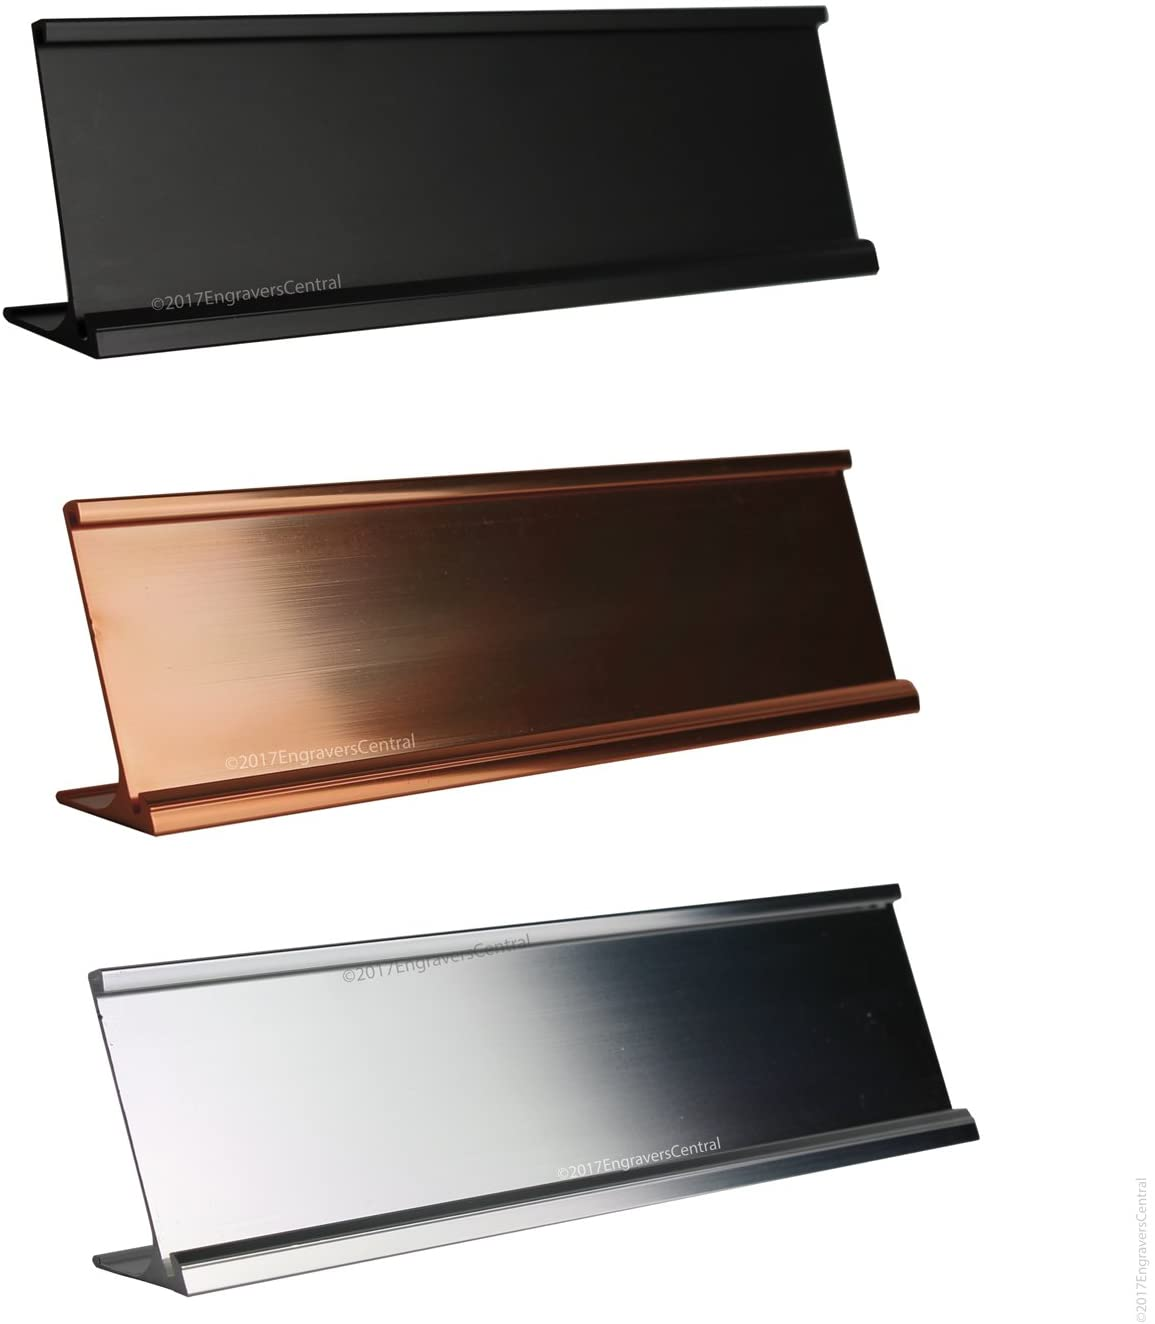 Top Selling 2x12 Office Desk or Tabletop Name Plate Holders - Fits Standard Size 2x12 NamePlates (Not Included), 3 Color Options to Choose from - Gold, Silver or Black.